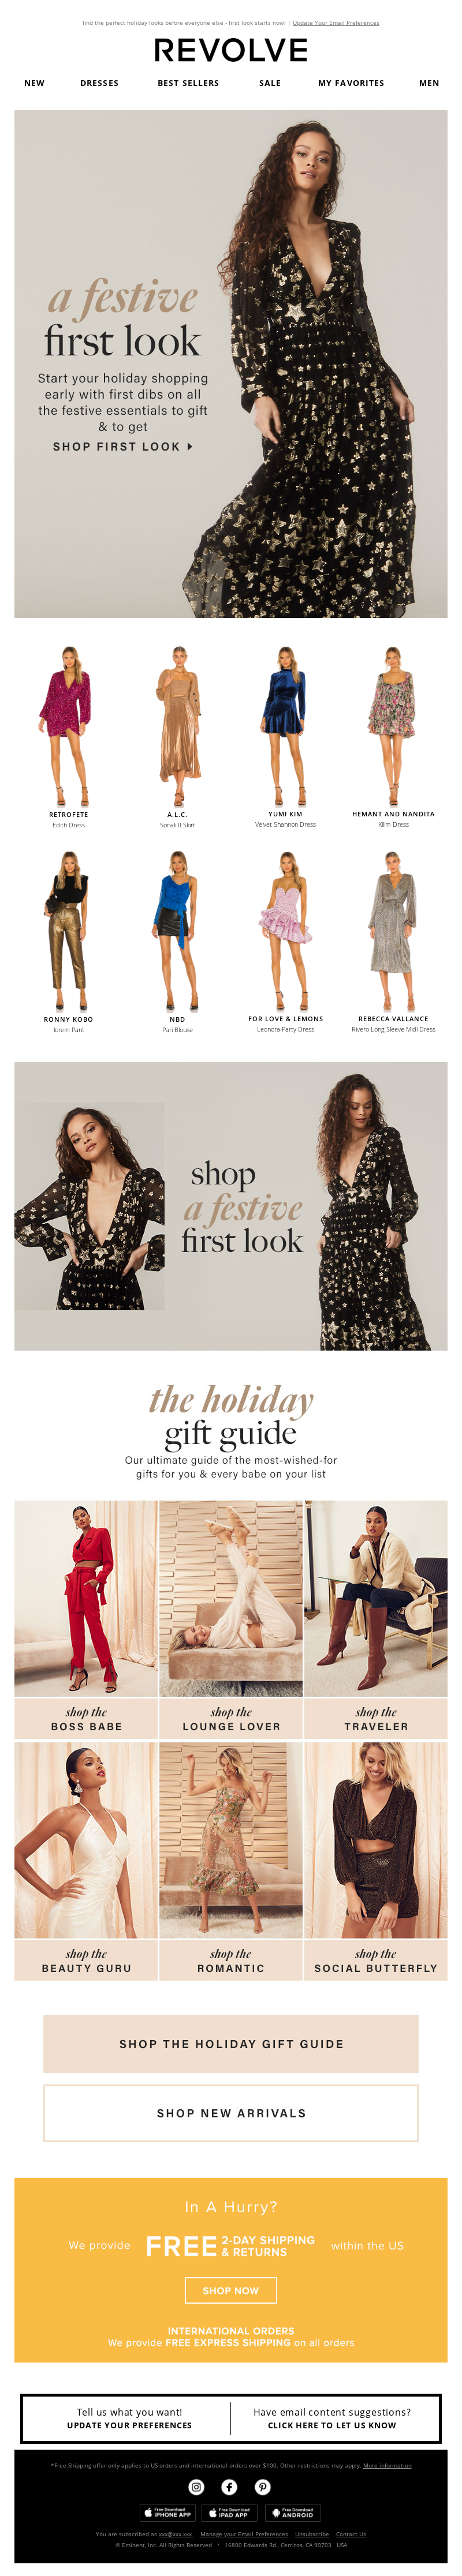 REVOLVE - get your holiday faves FIRST!